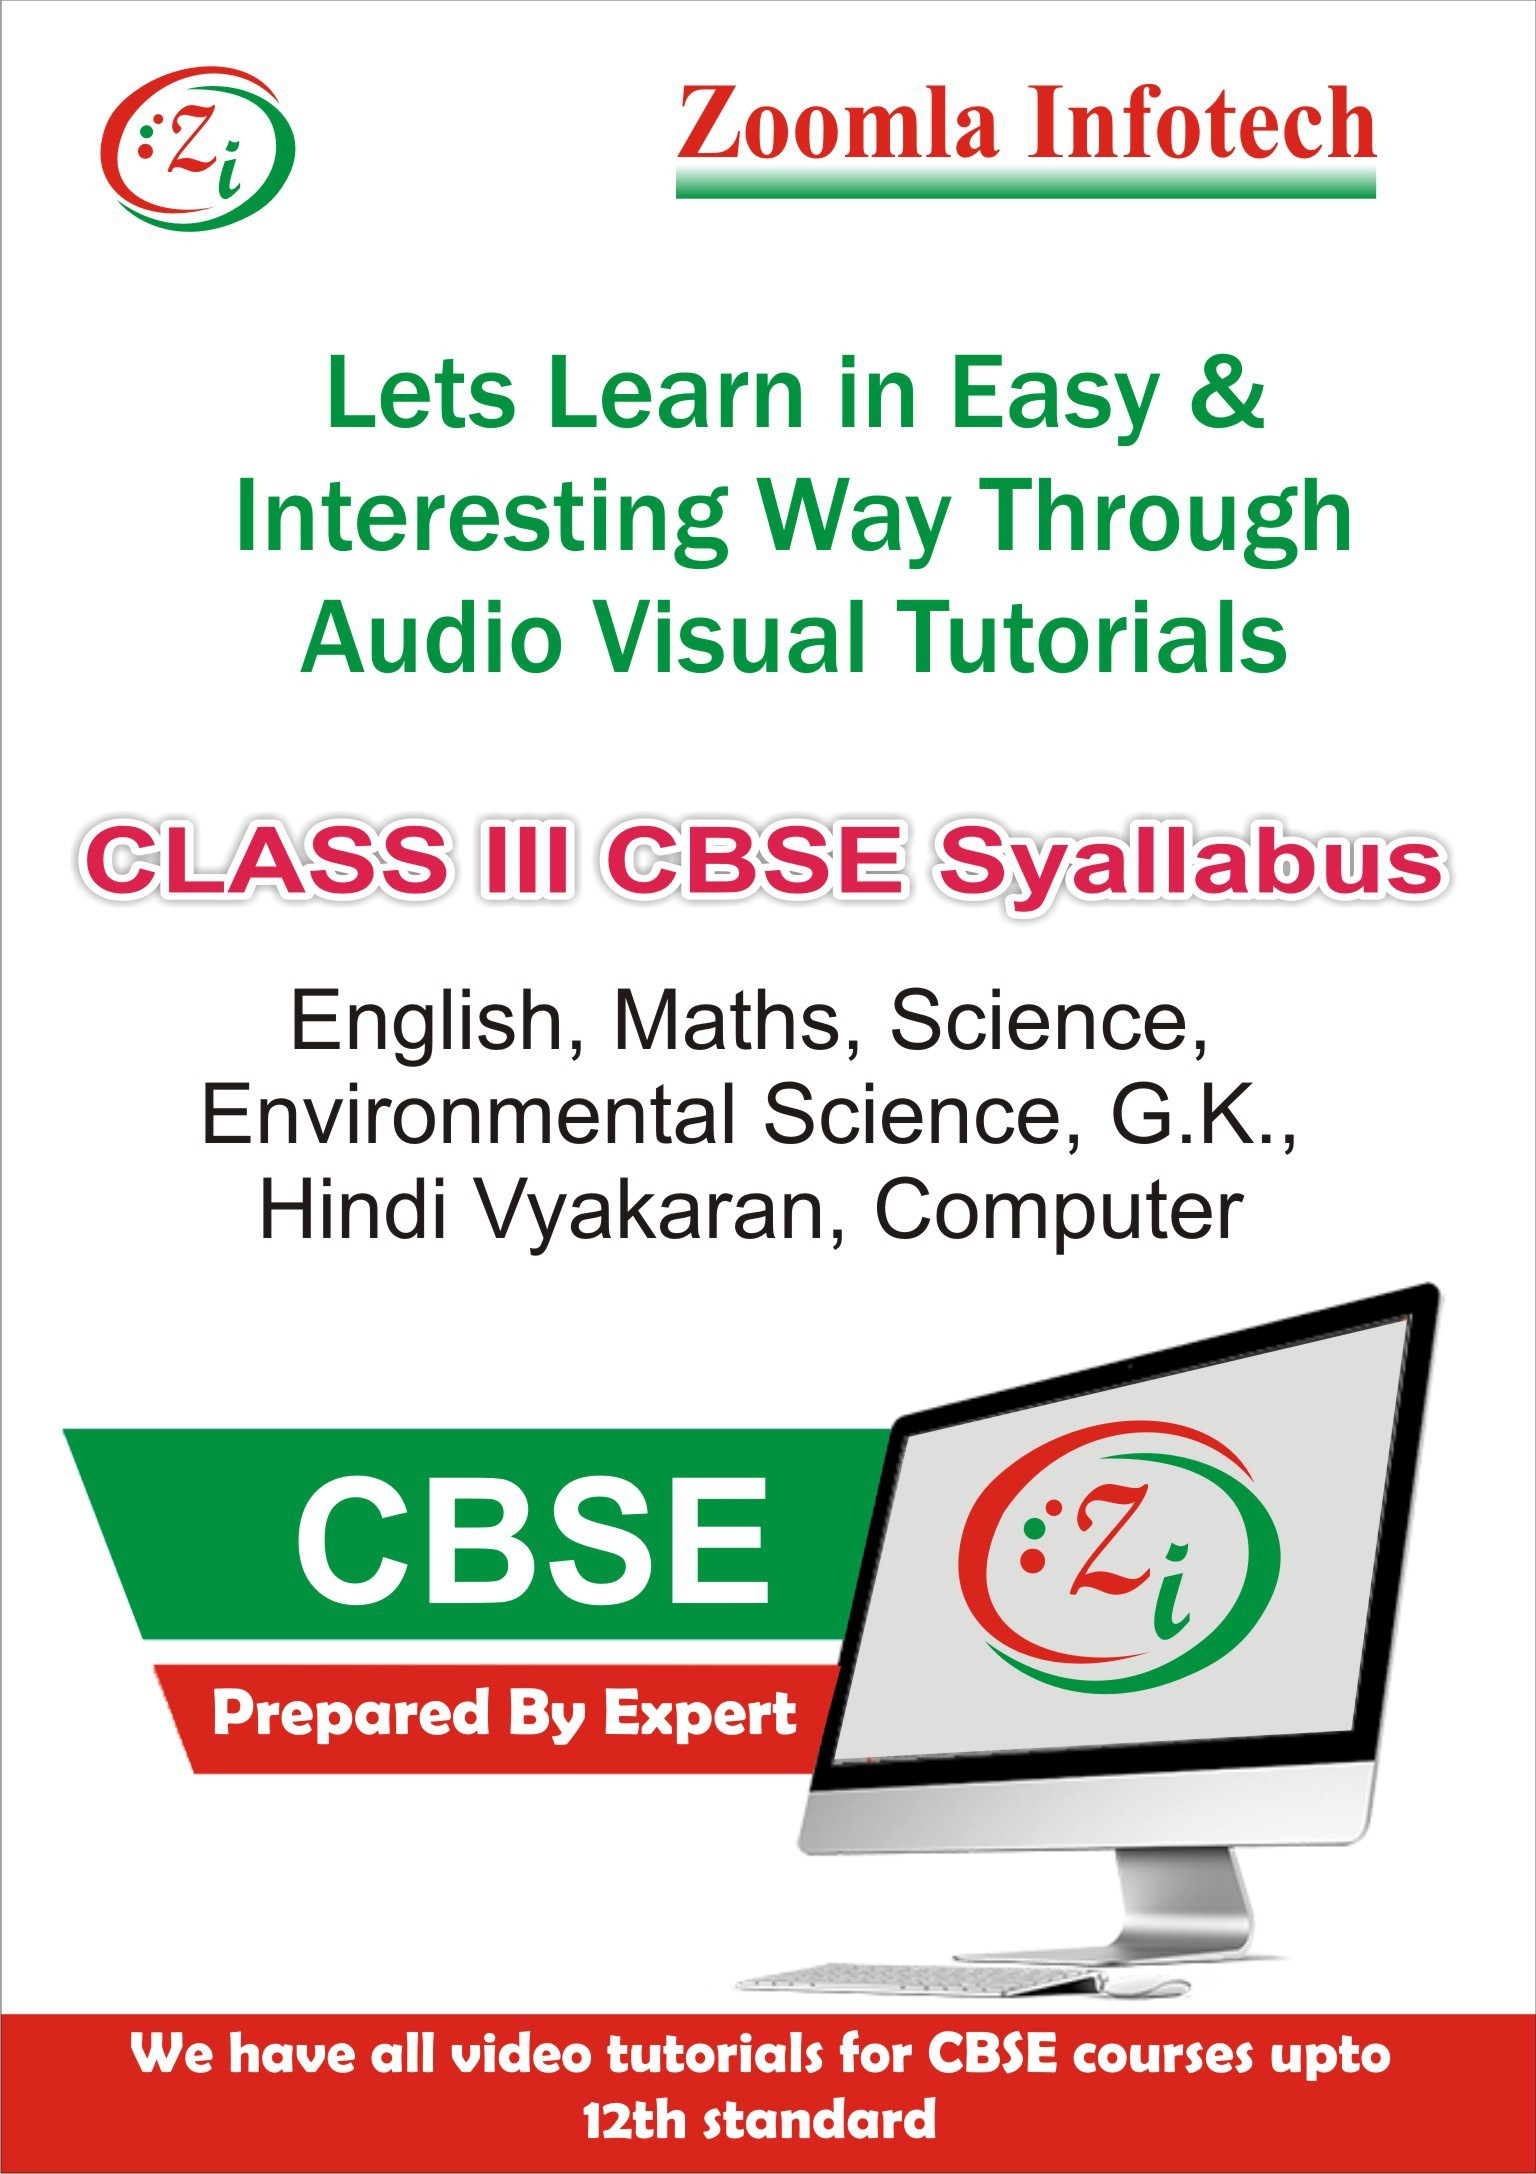 Zoomla Infotech Class 3 CBSE English, Maths, Science, Environmental Science, G.k., Hindi Vyakaran, Computer Video Tutorials(DVD)